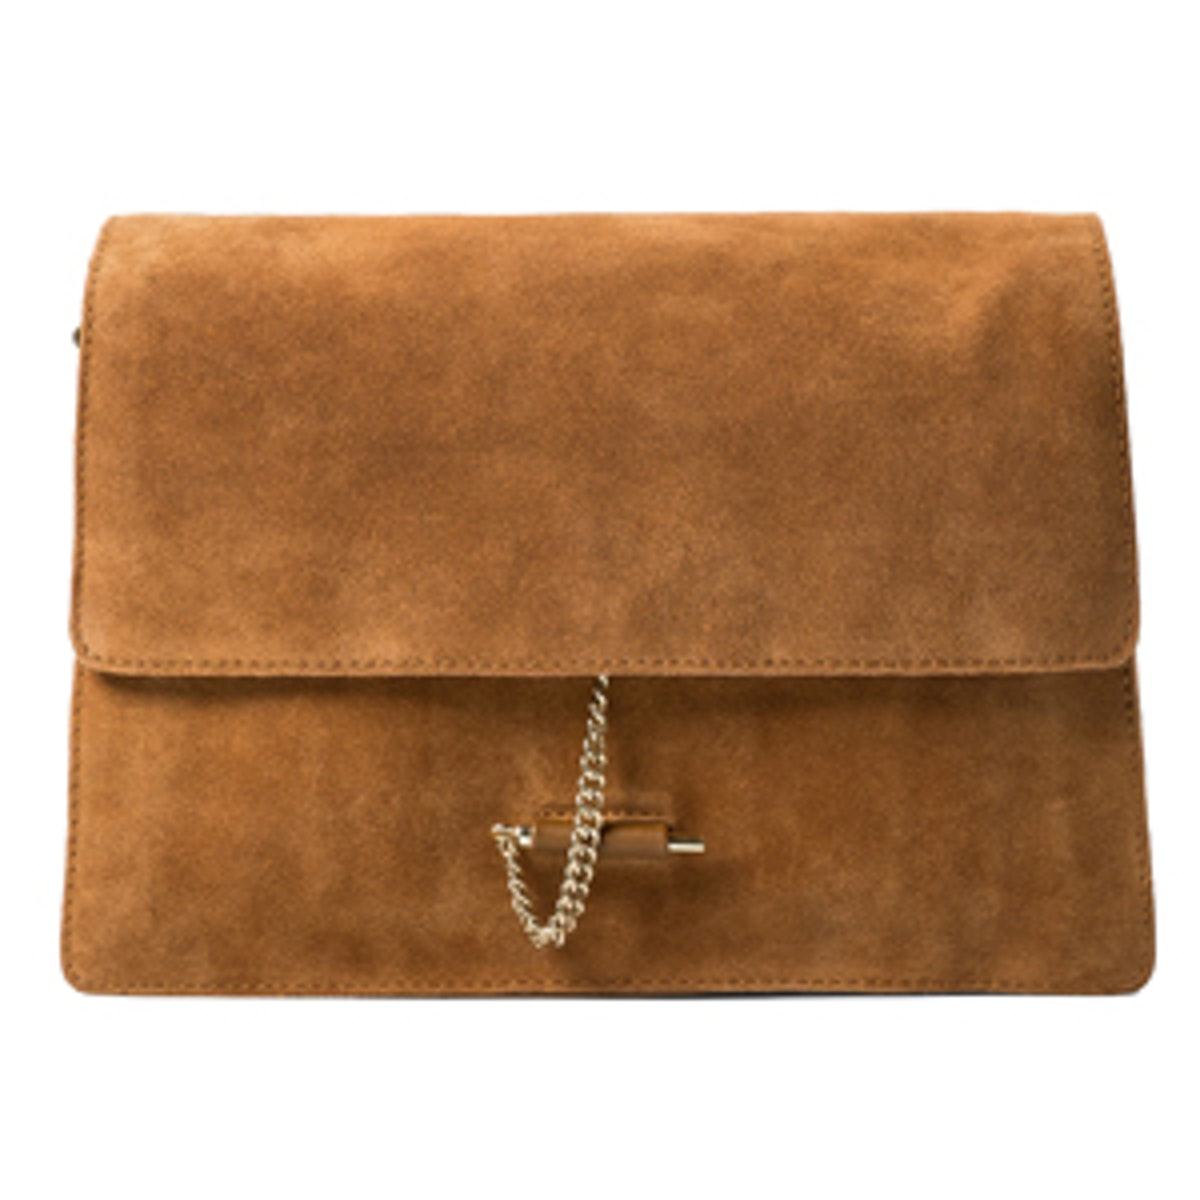 Chain Suede Bag